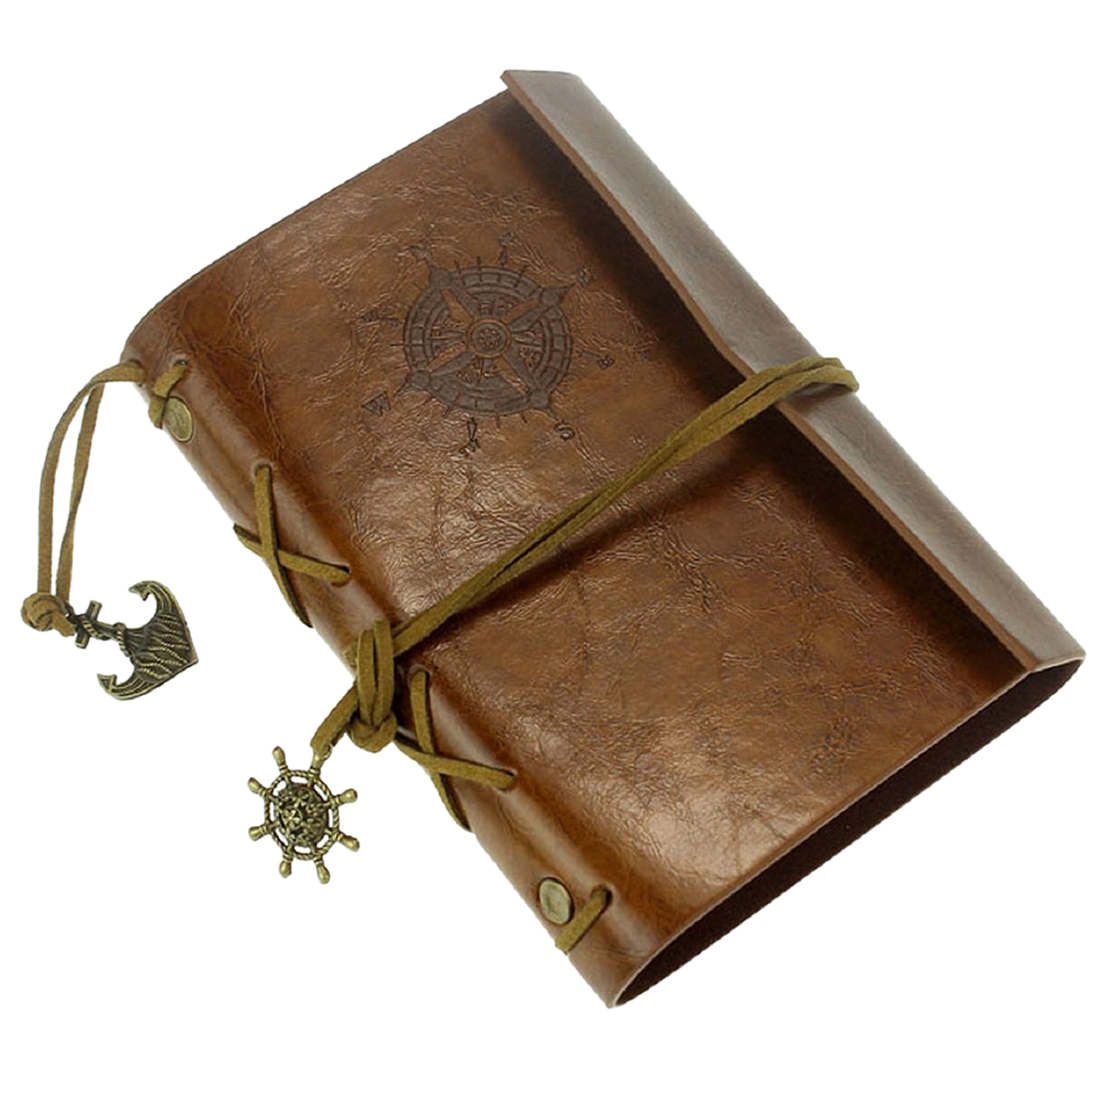 Affordable Leather Case Vintage Style Portable Journal Diary book Chain Nautical Small Size supply chain of transmission quality and affordable 20ab